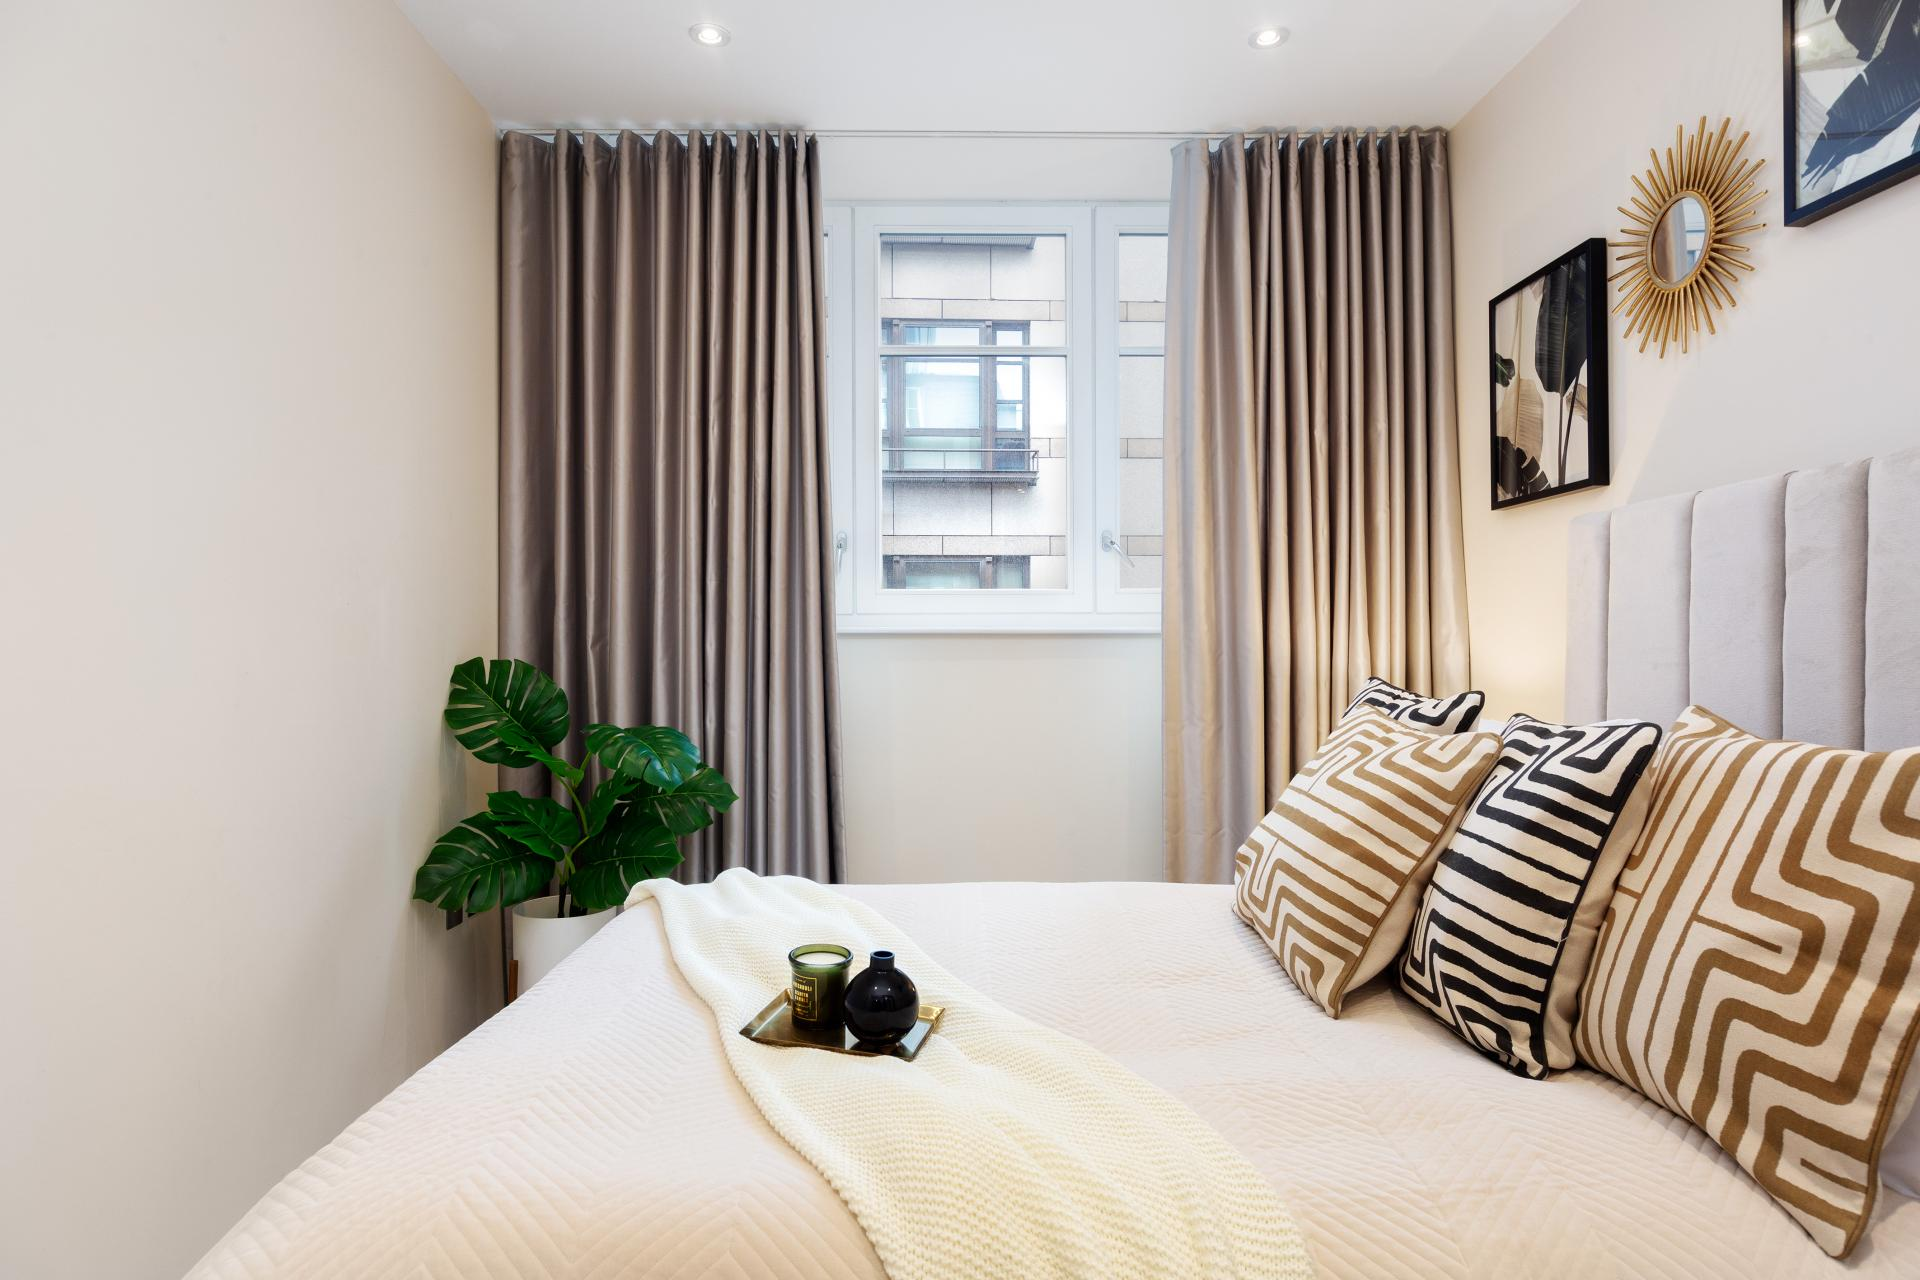 Bed at Chancery Lane Apartment, Chancery Lane, London - Citybase Apartments